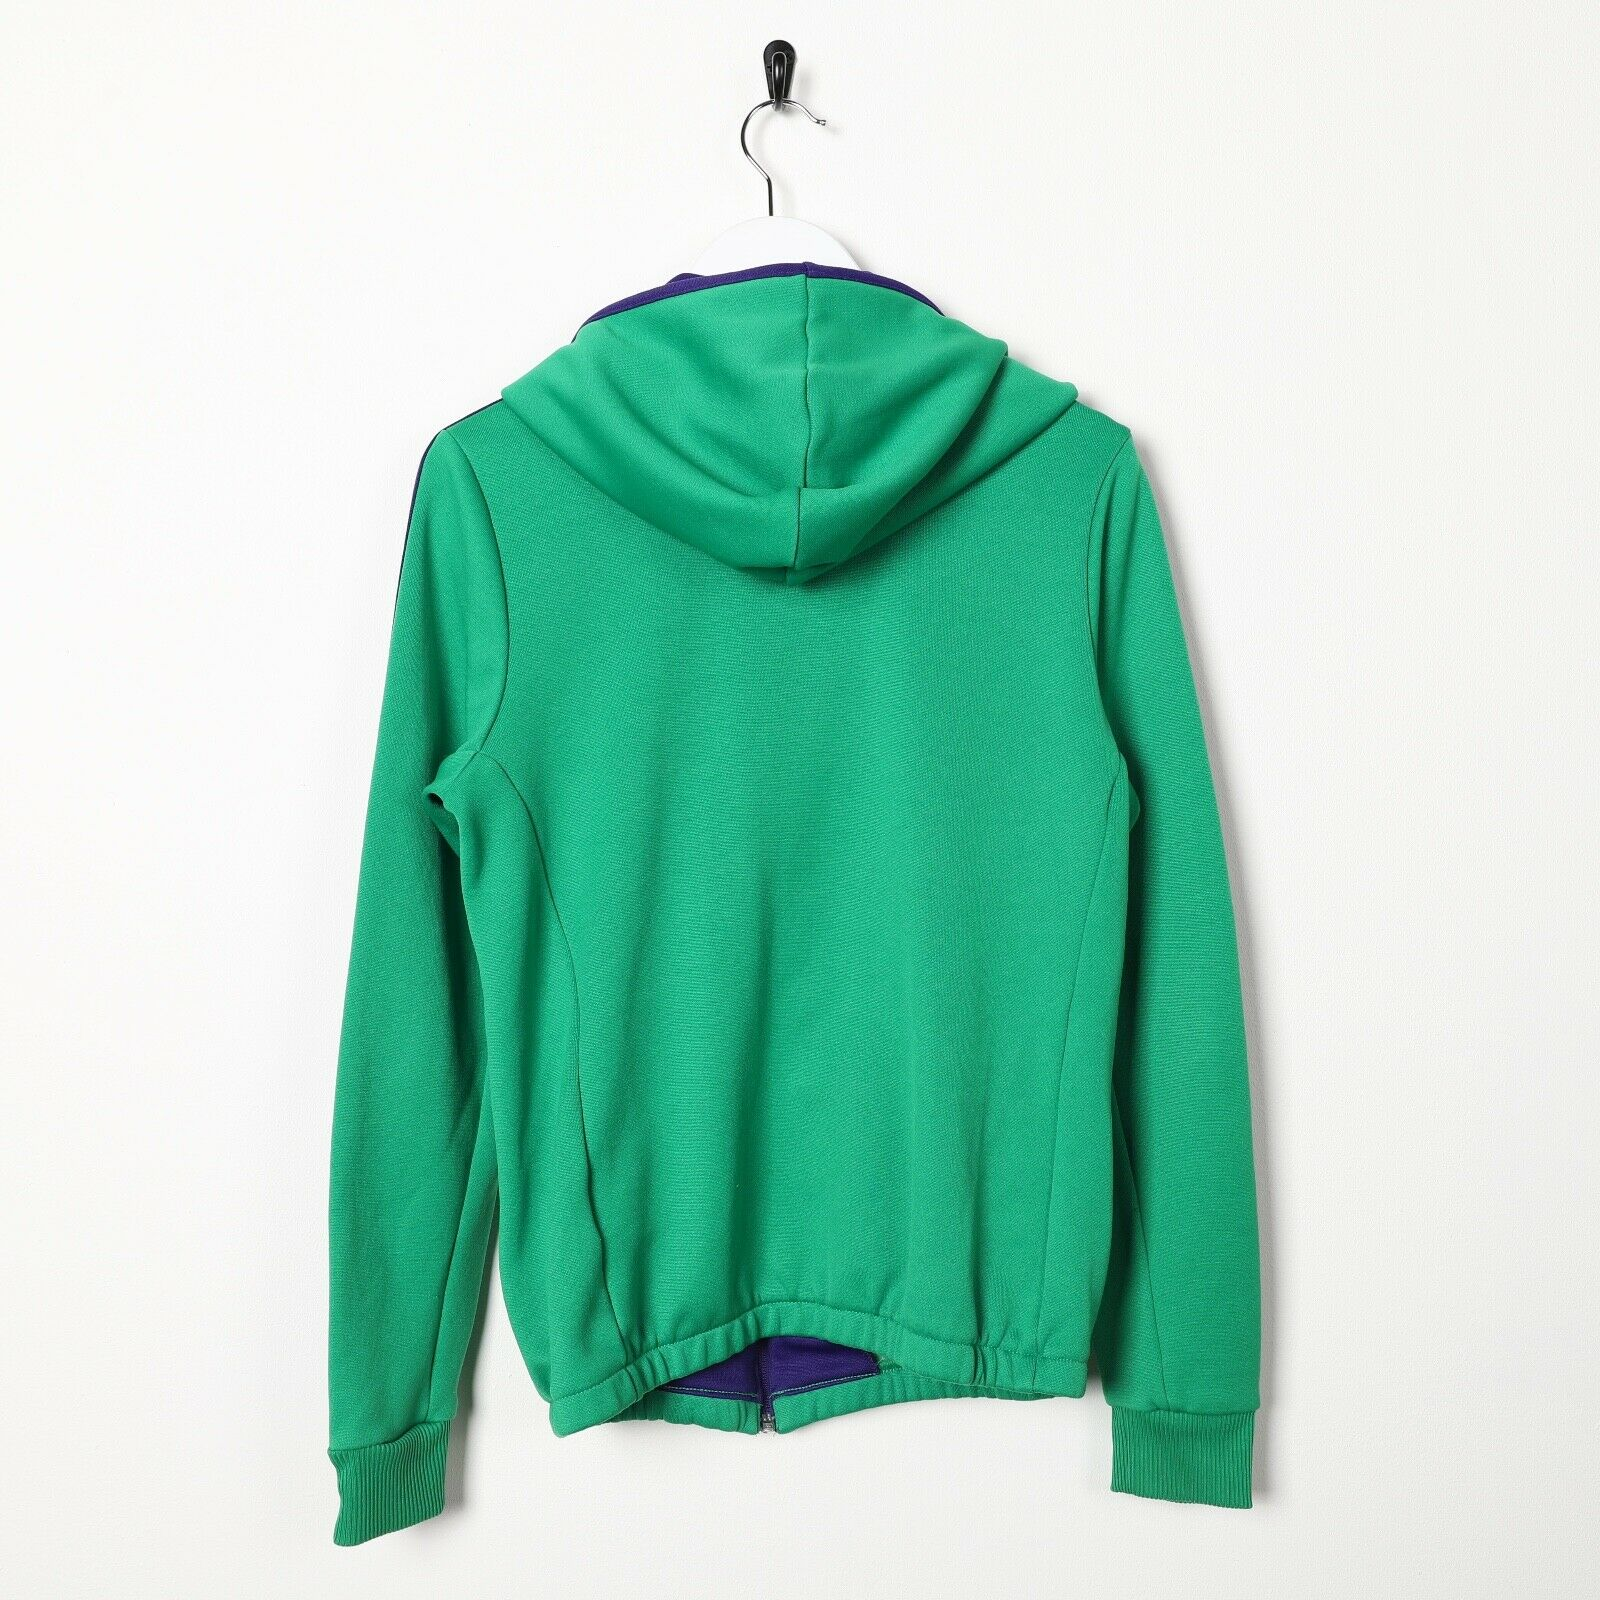 Vintage Women's ADIDAS ORIGINALS Zip Up Polyester Hoodie Green | Small S